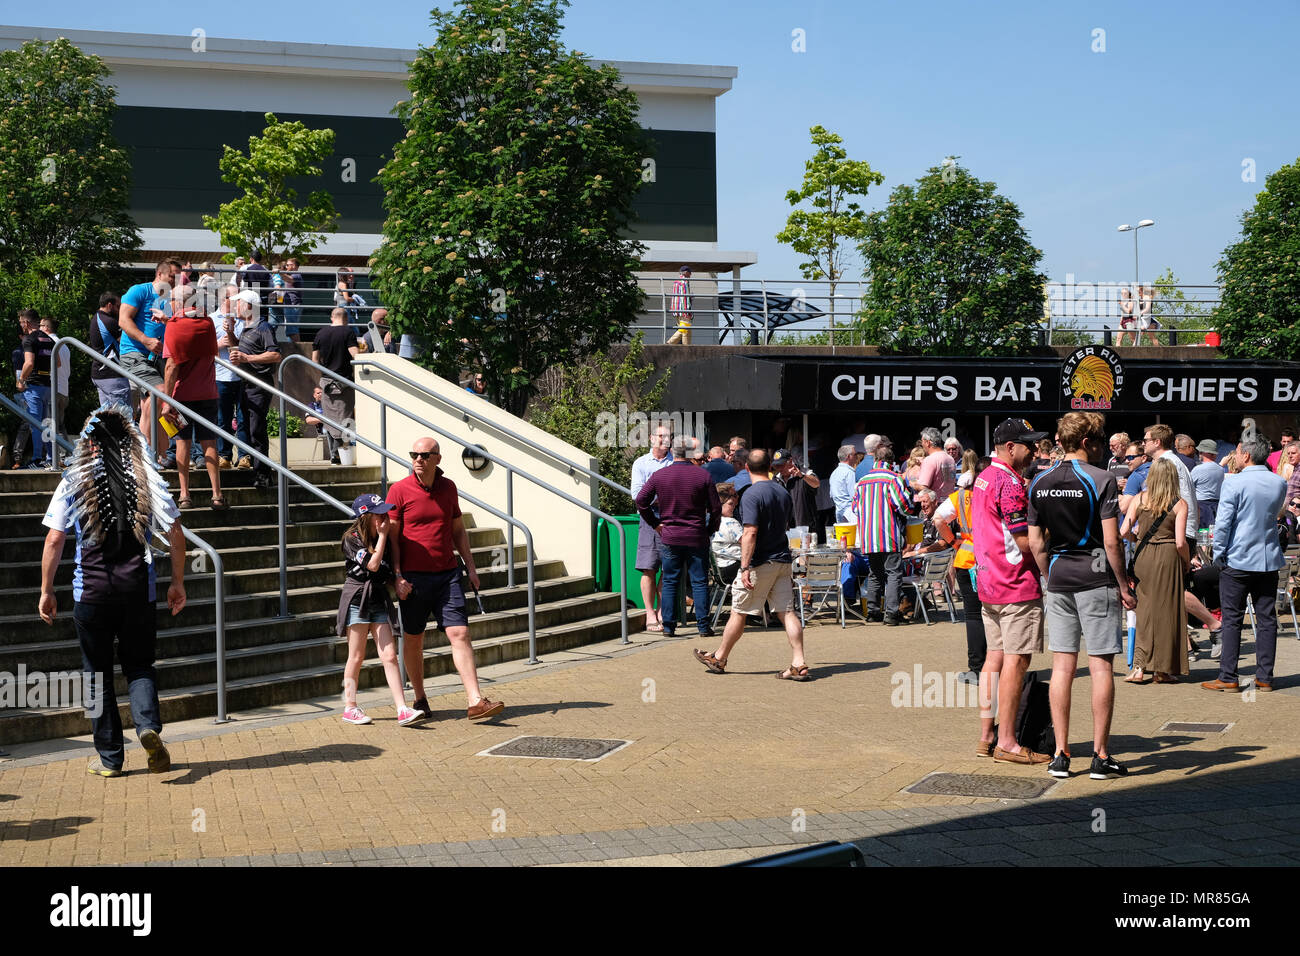 Exeter, Devon, UK - May 19th 2018: Exeter Chiefs and Newcastle Falcons fans attend the Aviva Premiership semi-final match at Sandy Park in Exeter,UK - Stock Image